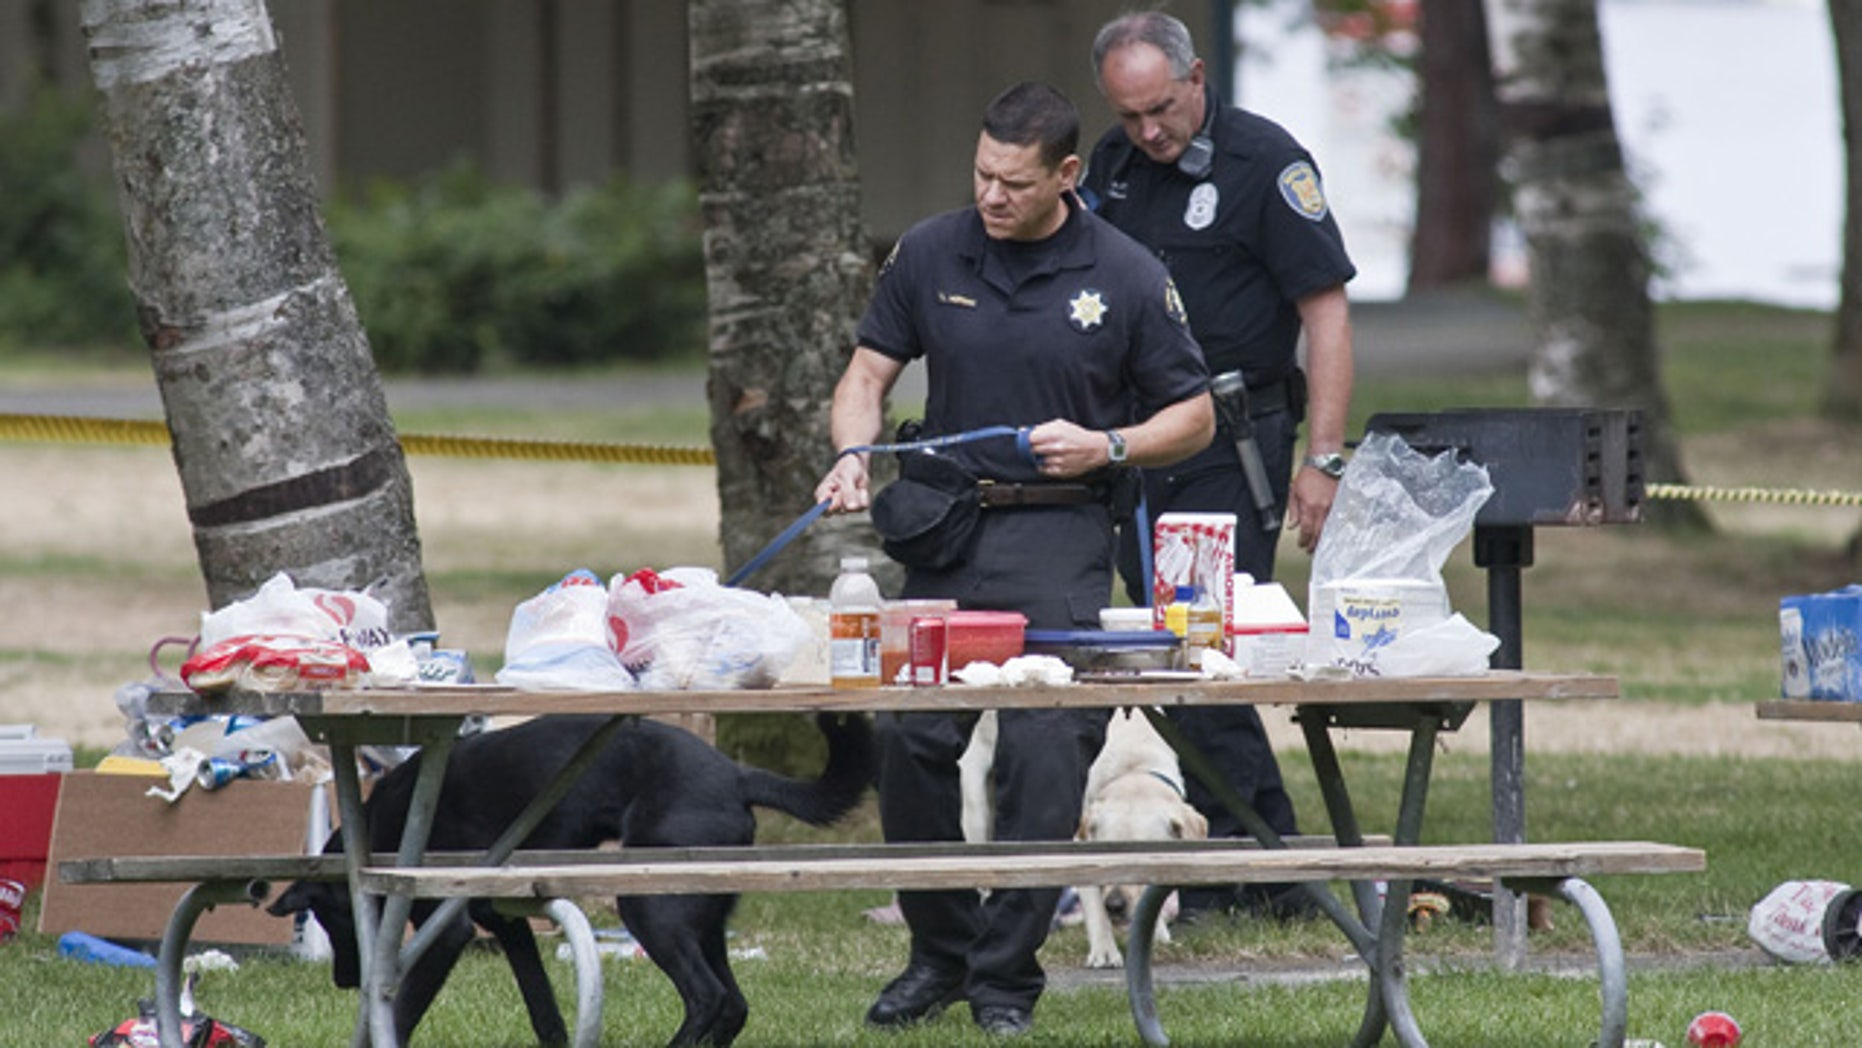 July 18: King County Sheriff's Deputy Tim Morgan, foreground, and Seattle Police Officer Craig Williamson and their respective search dogs comb through the effects of people who were forced to leave their belongings behind following a Saturday night fatal shooting at Lake Sammamish State Park in Issaquah, Wash.